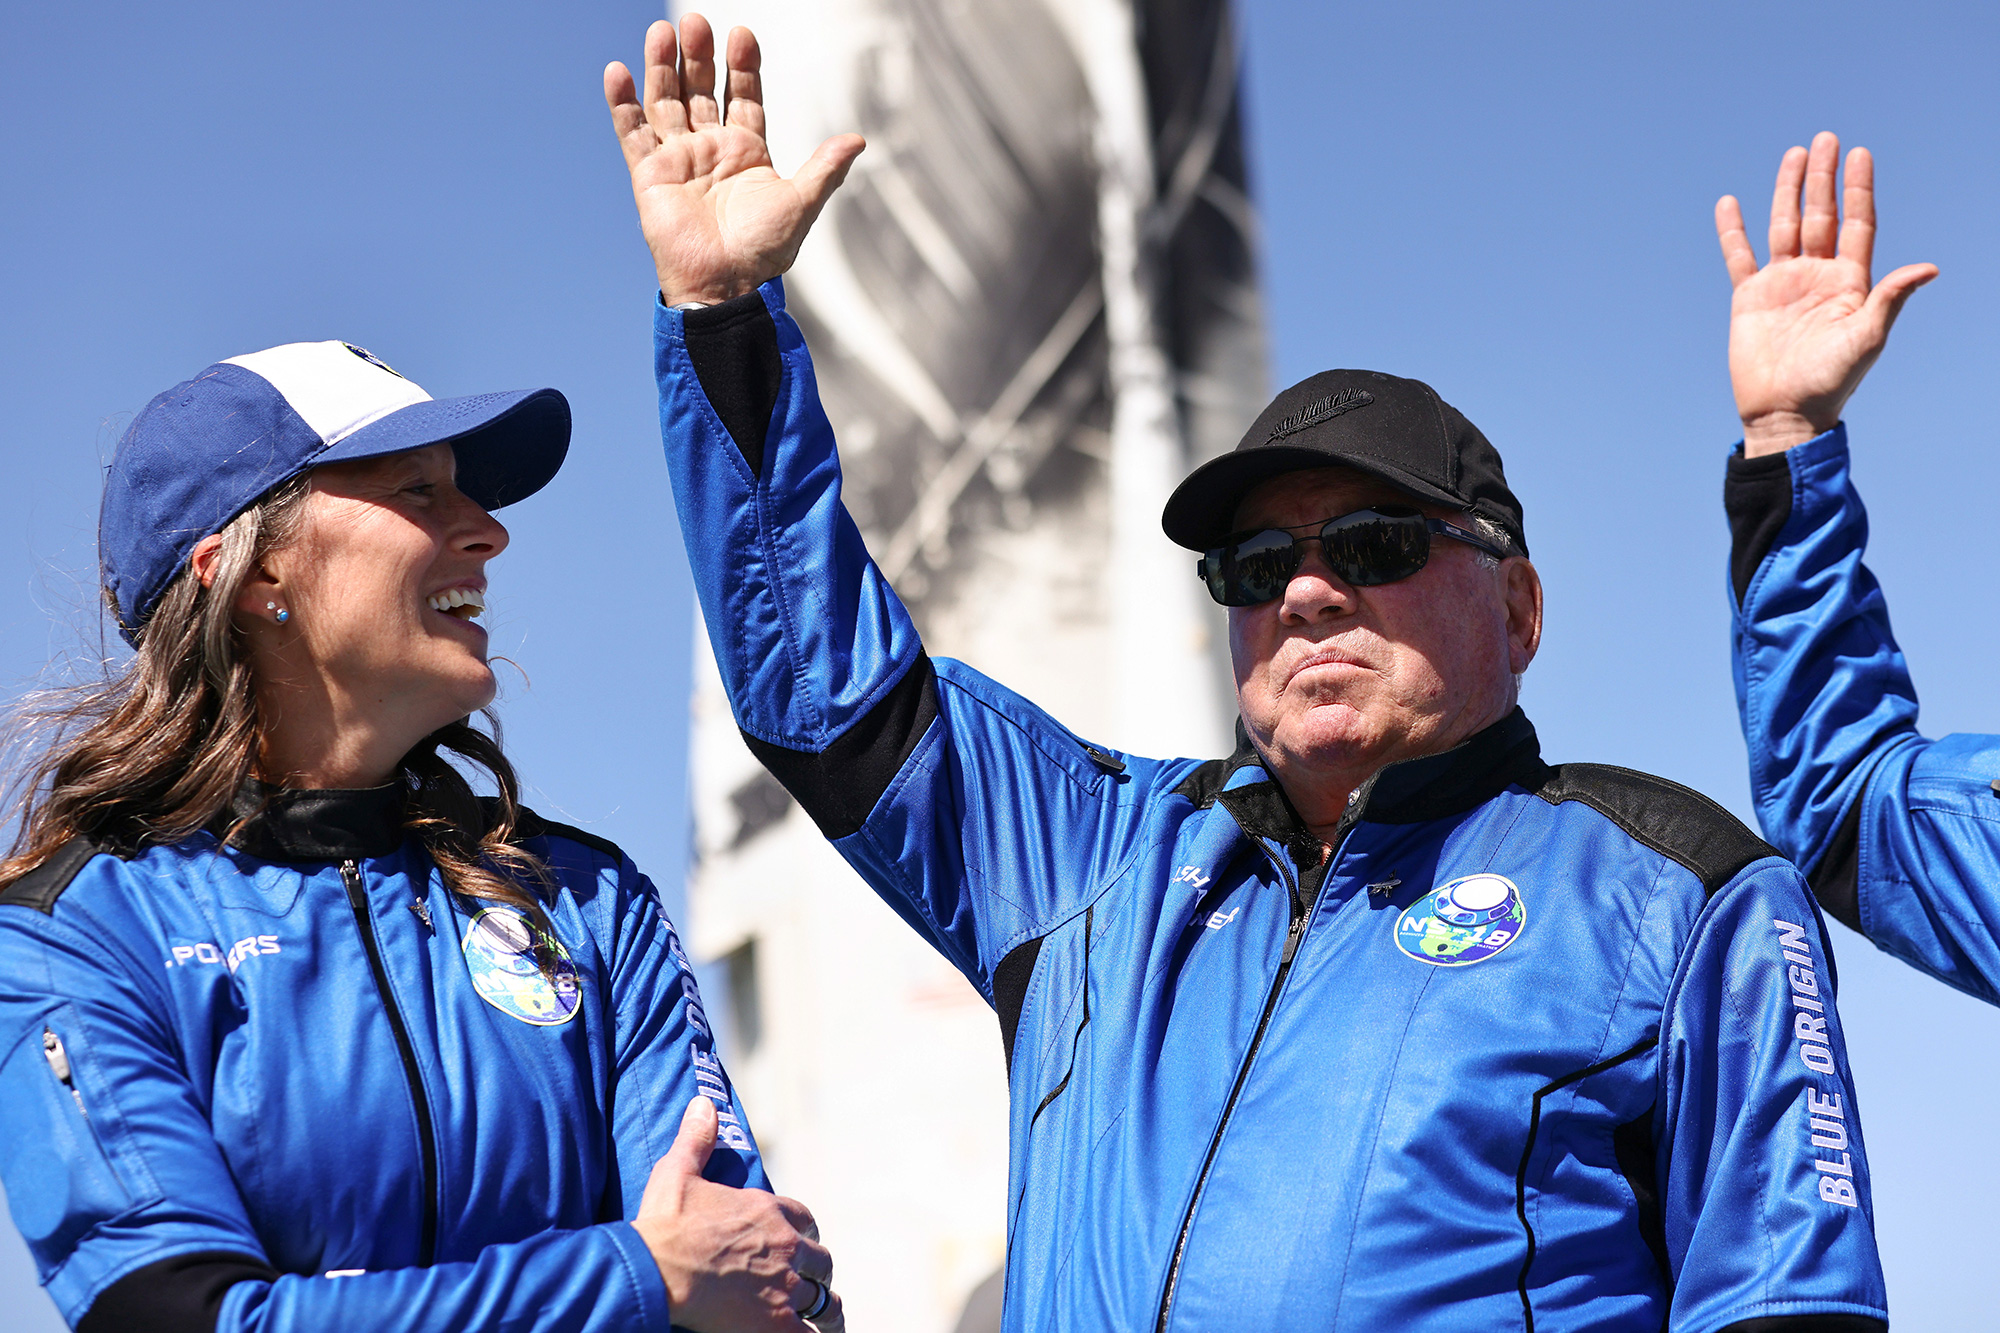 Blue Origins vice president of mission and flight operations Audrey Powers (L) looks on as Star Trek actor William Shatner waves during a media availability on the landing pad of Blue Origin's New Shepard after they flew into space on October 13, 2021 near Van Horn, Texas.